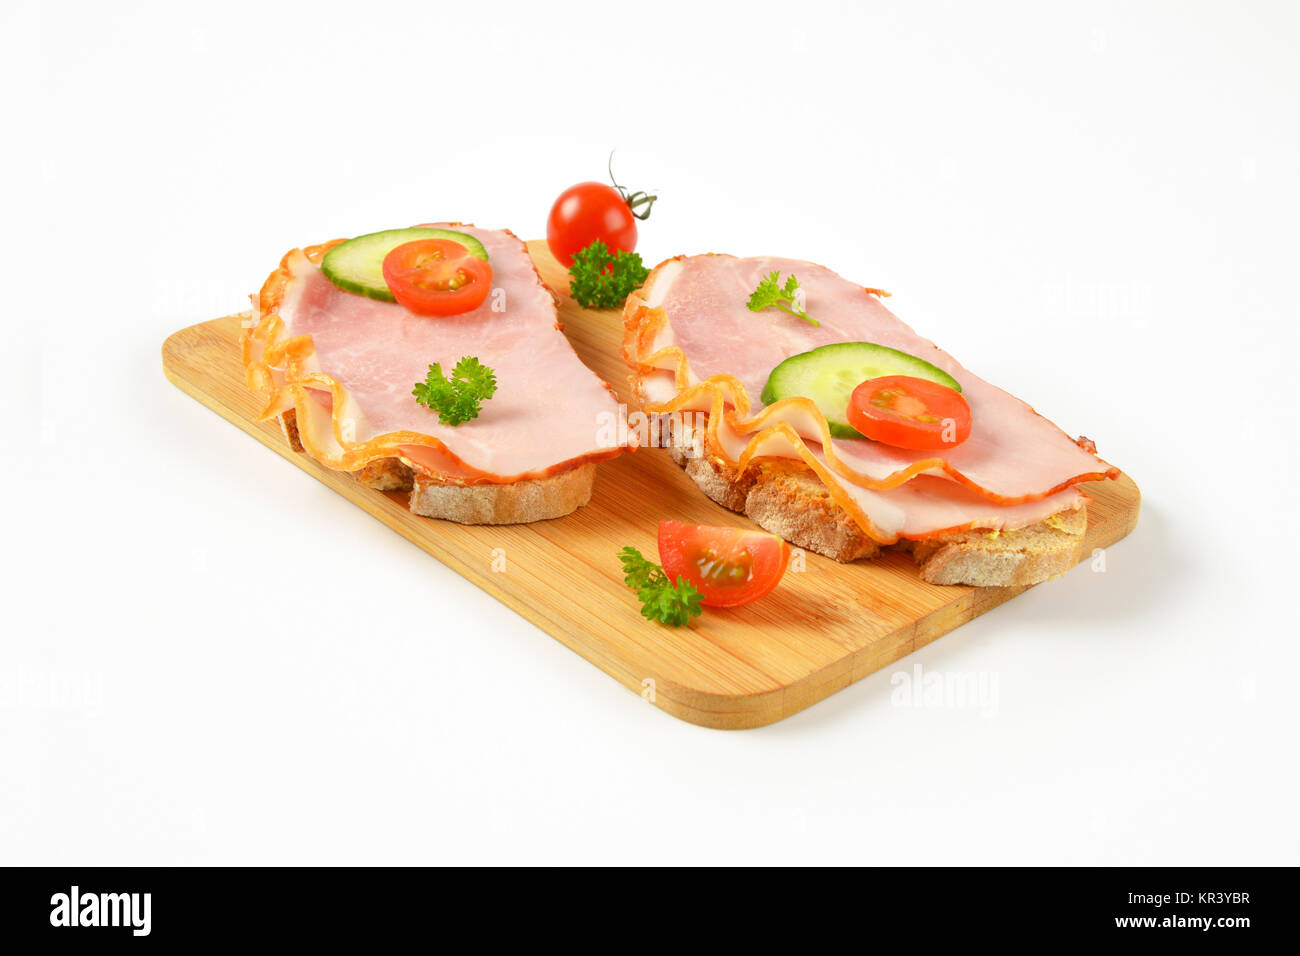 open faced ham sandwiches - Stock Image